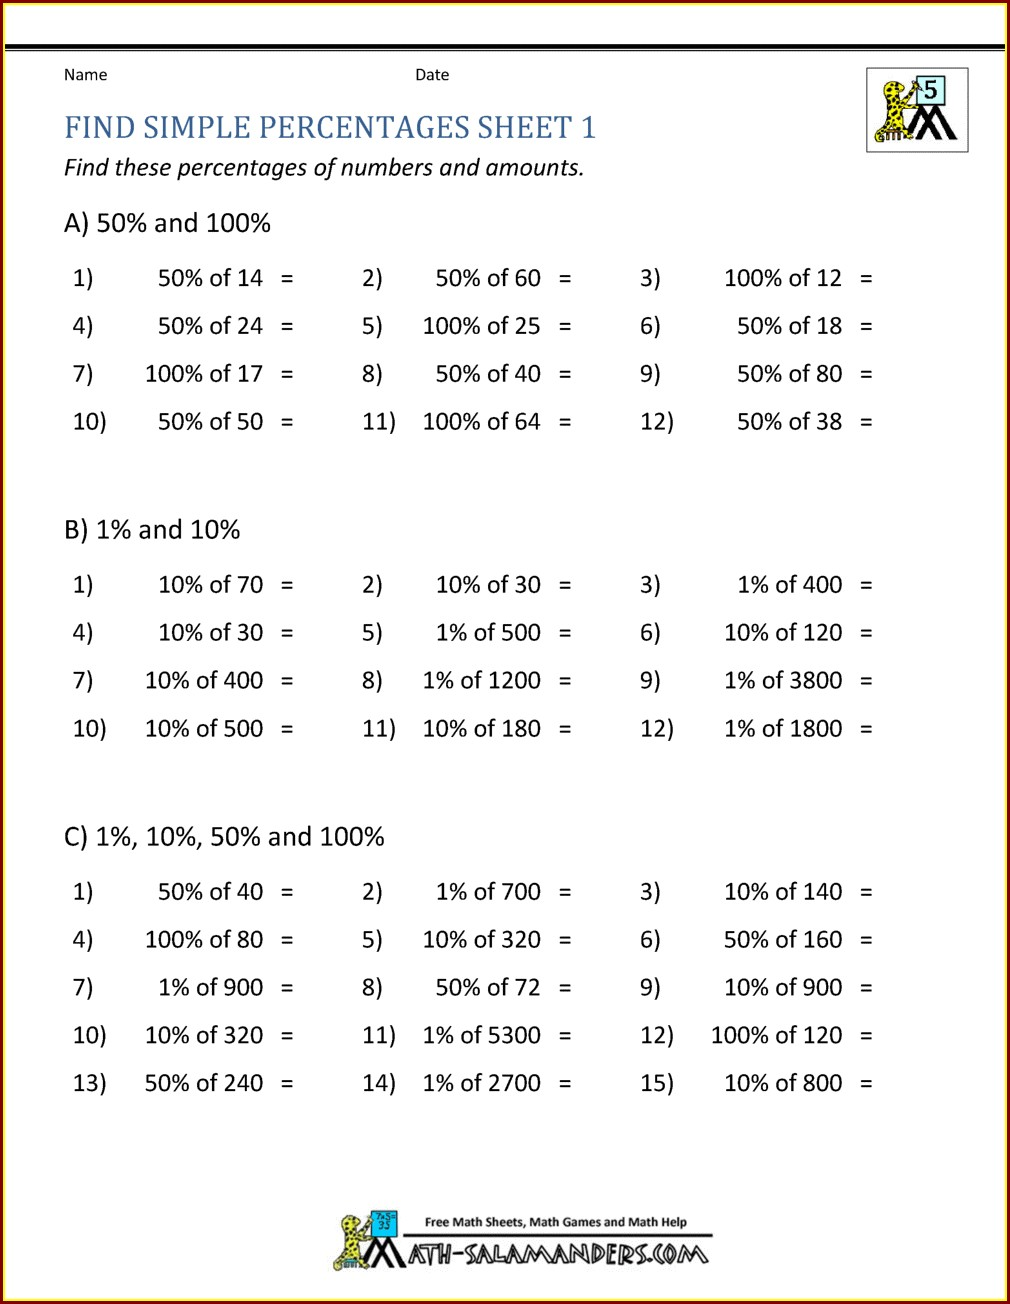 Percentage Worksheets For Grade 5 With Answers